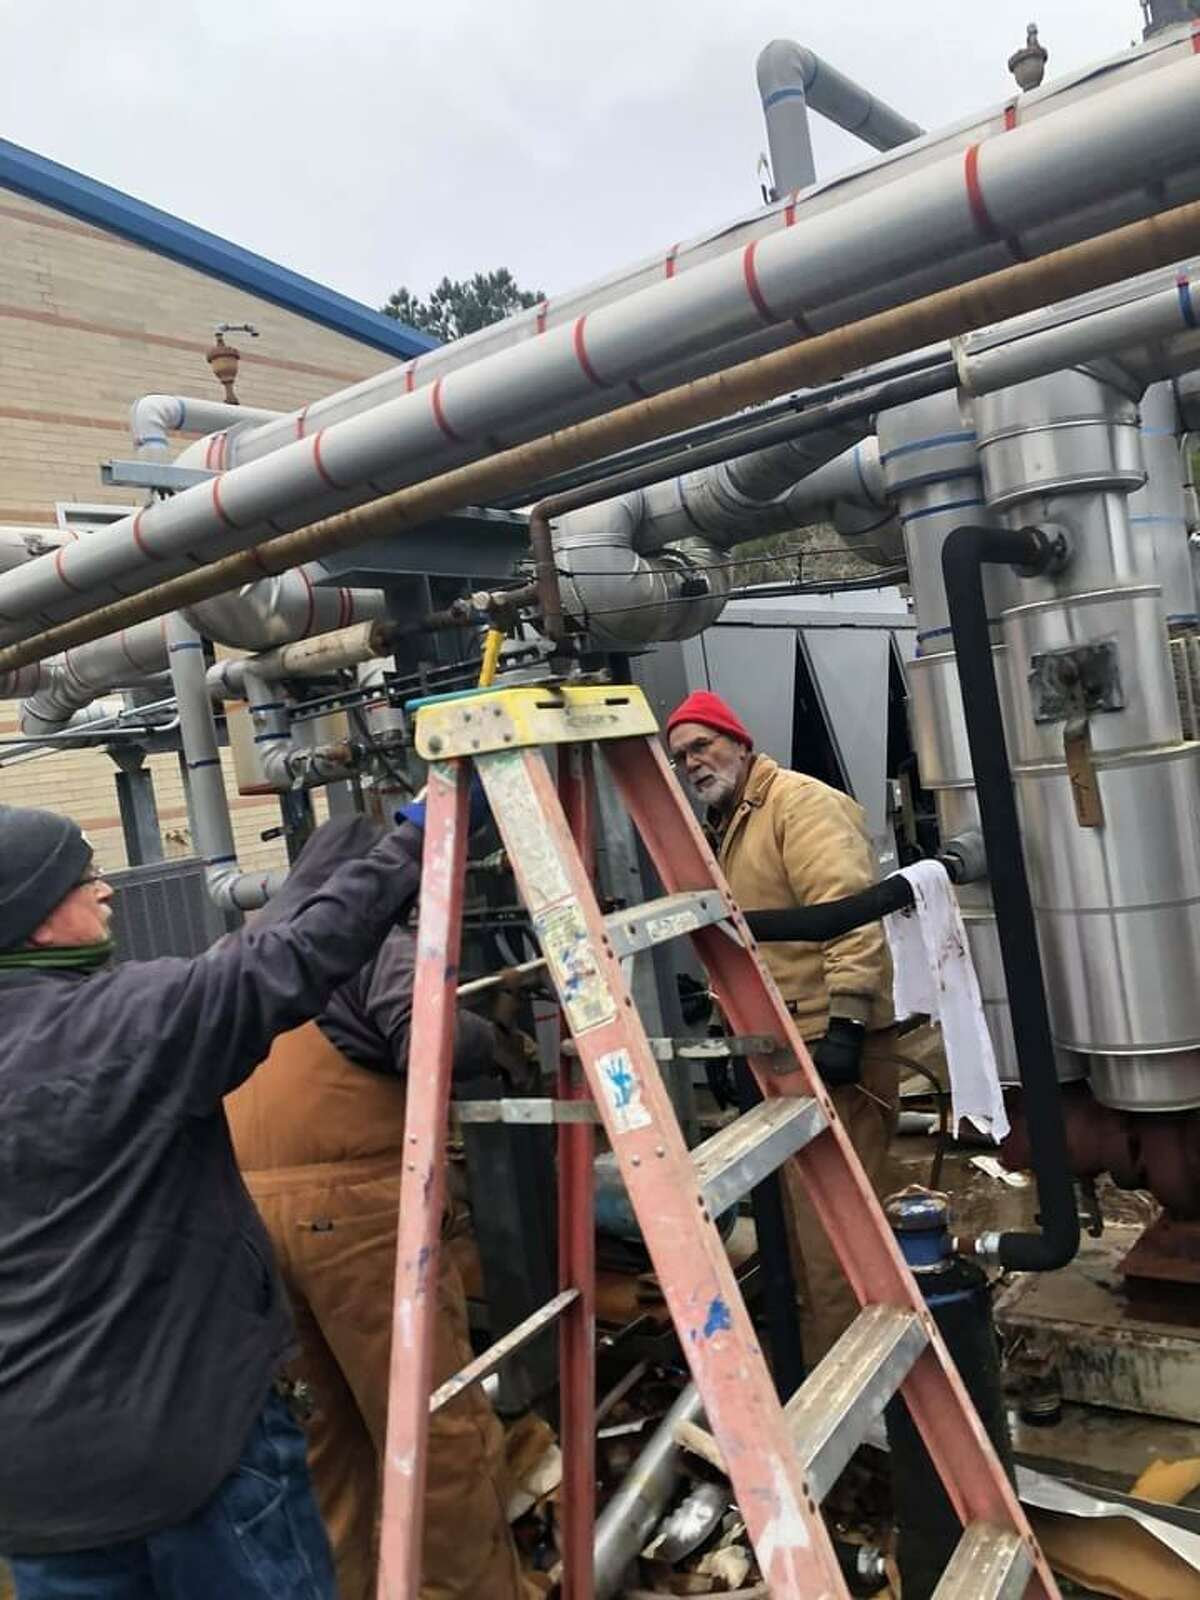 Maintenance crews at Buna ISD worked to repair and replace busted pipes after a hard freeze impacted the region this week. School is expected to resume on Monday.